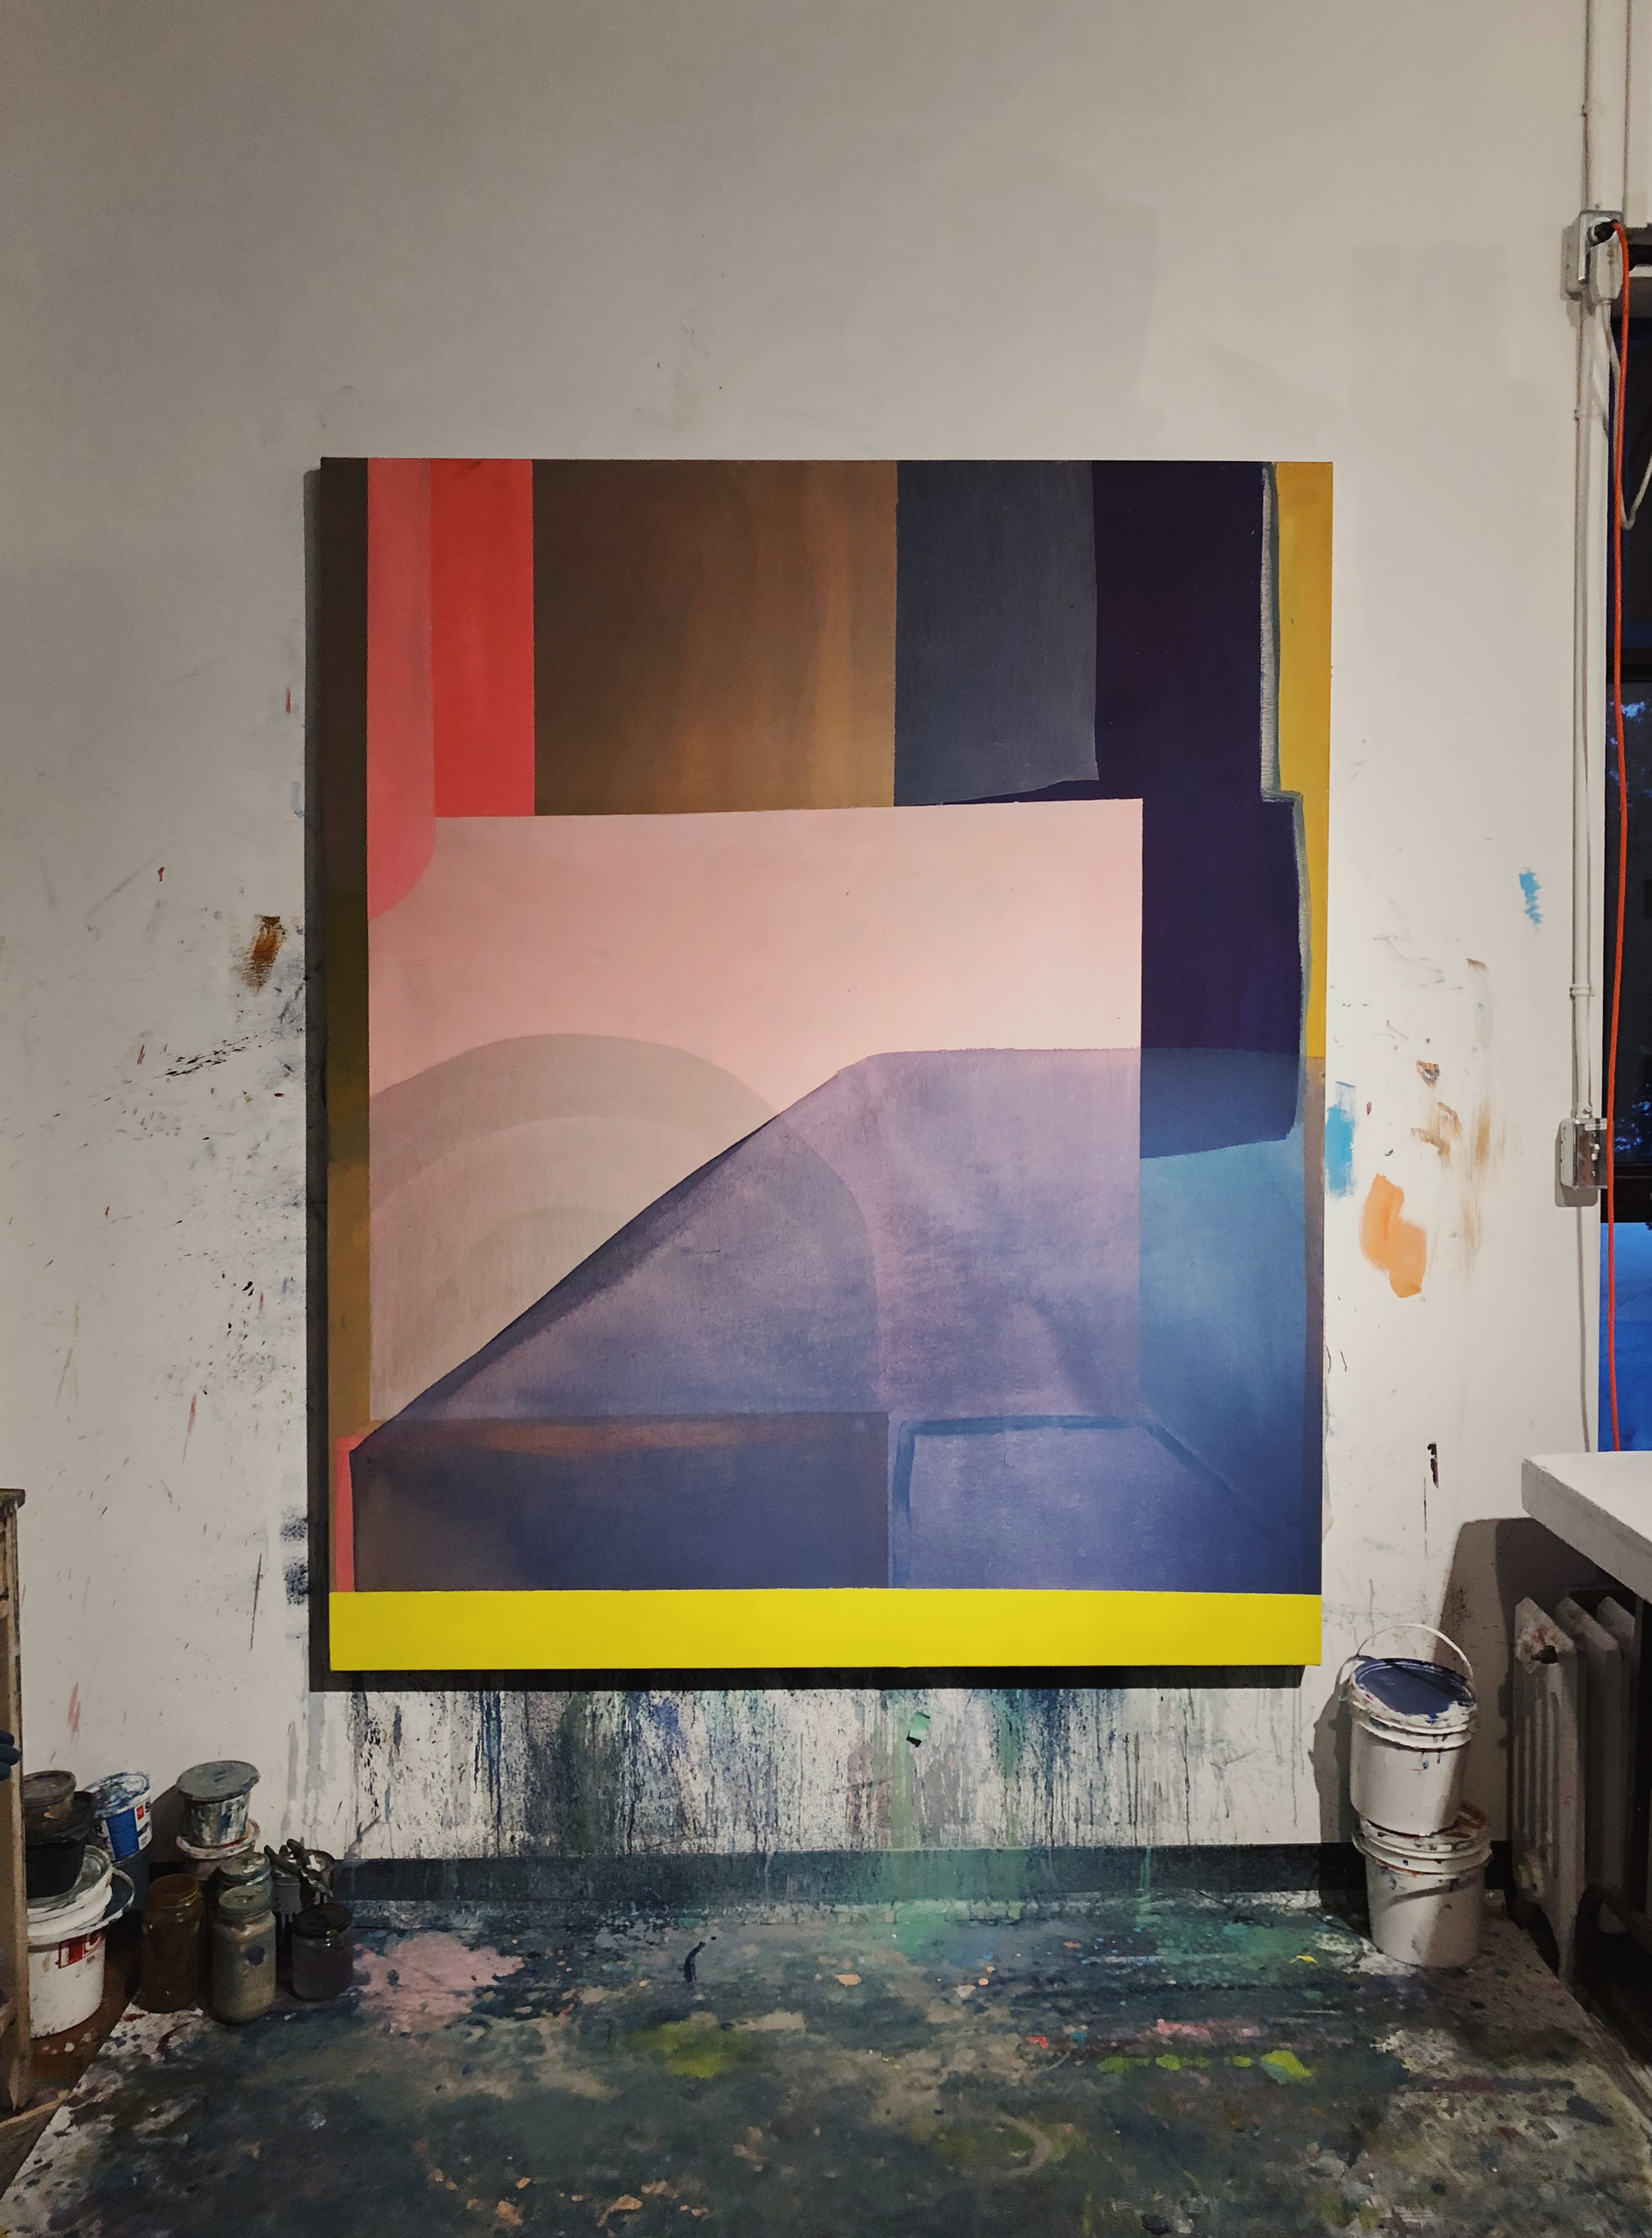 Emma Carney, studio view, oil on canvas